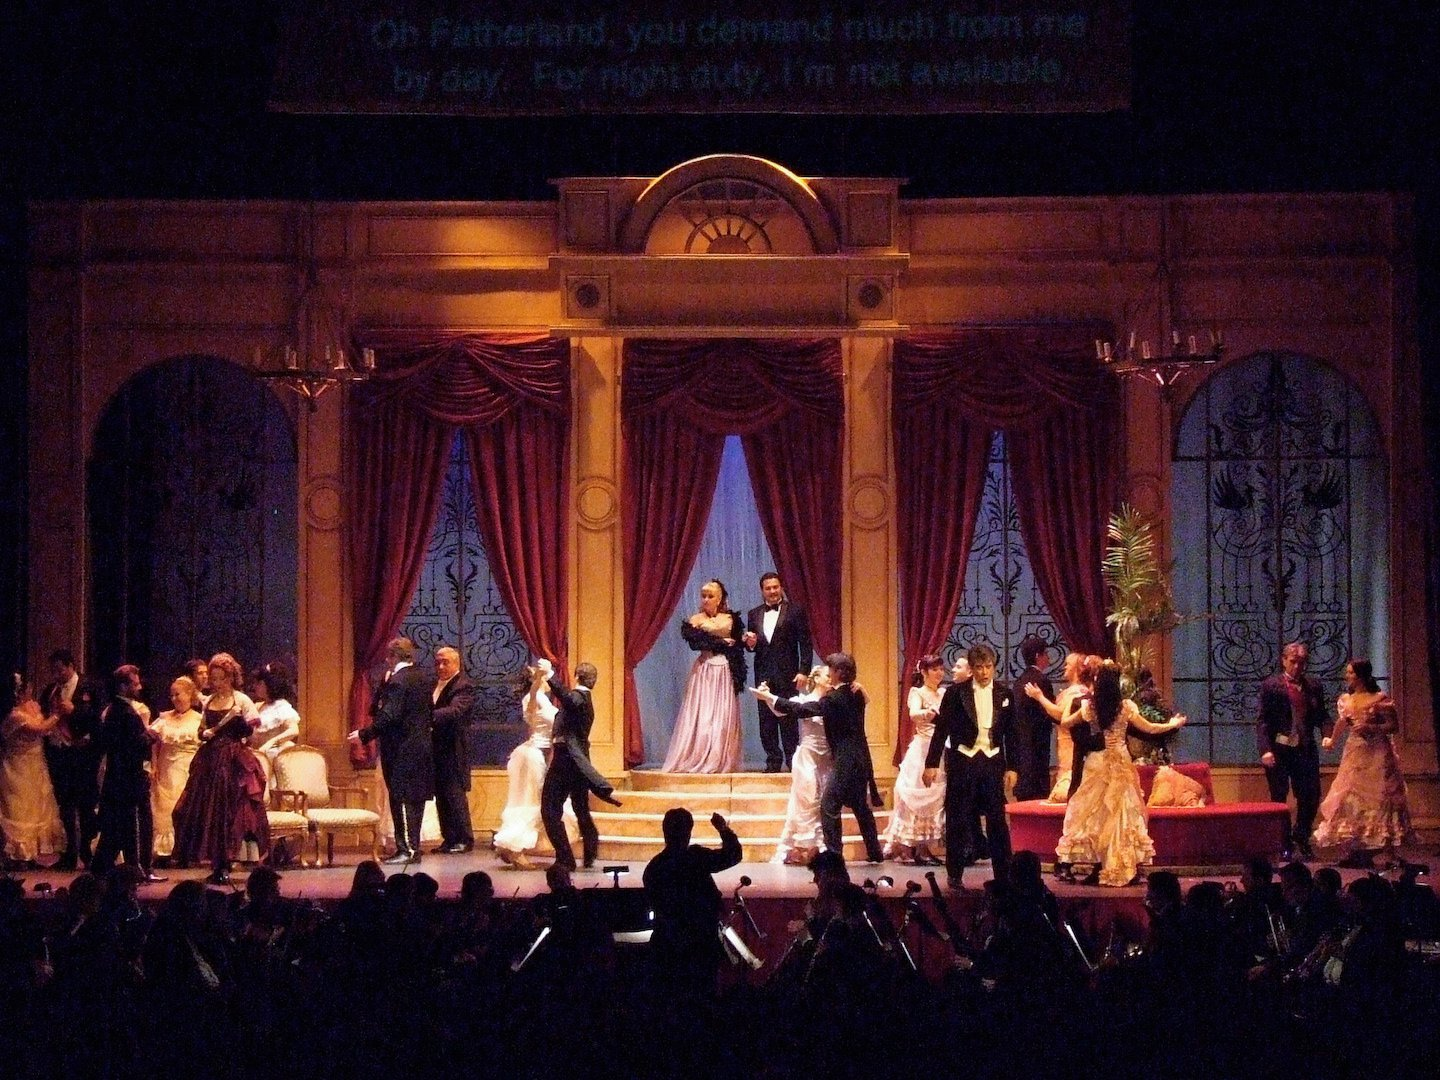 Lehar's THE MERRY WIDOW (this set can also be used for Verdi's LA TRAVIATA)